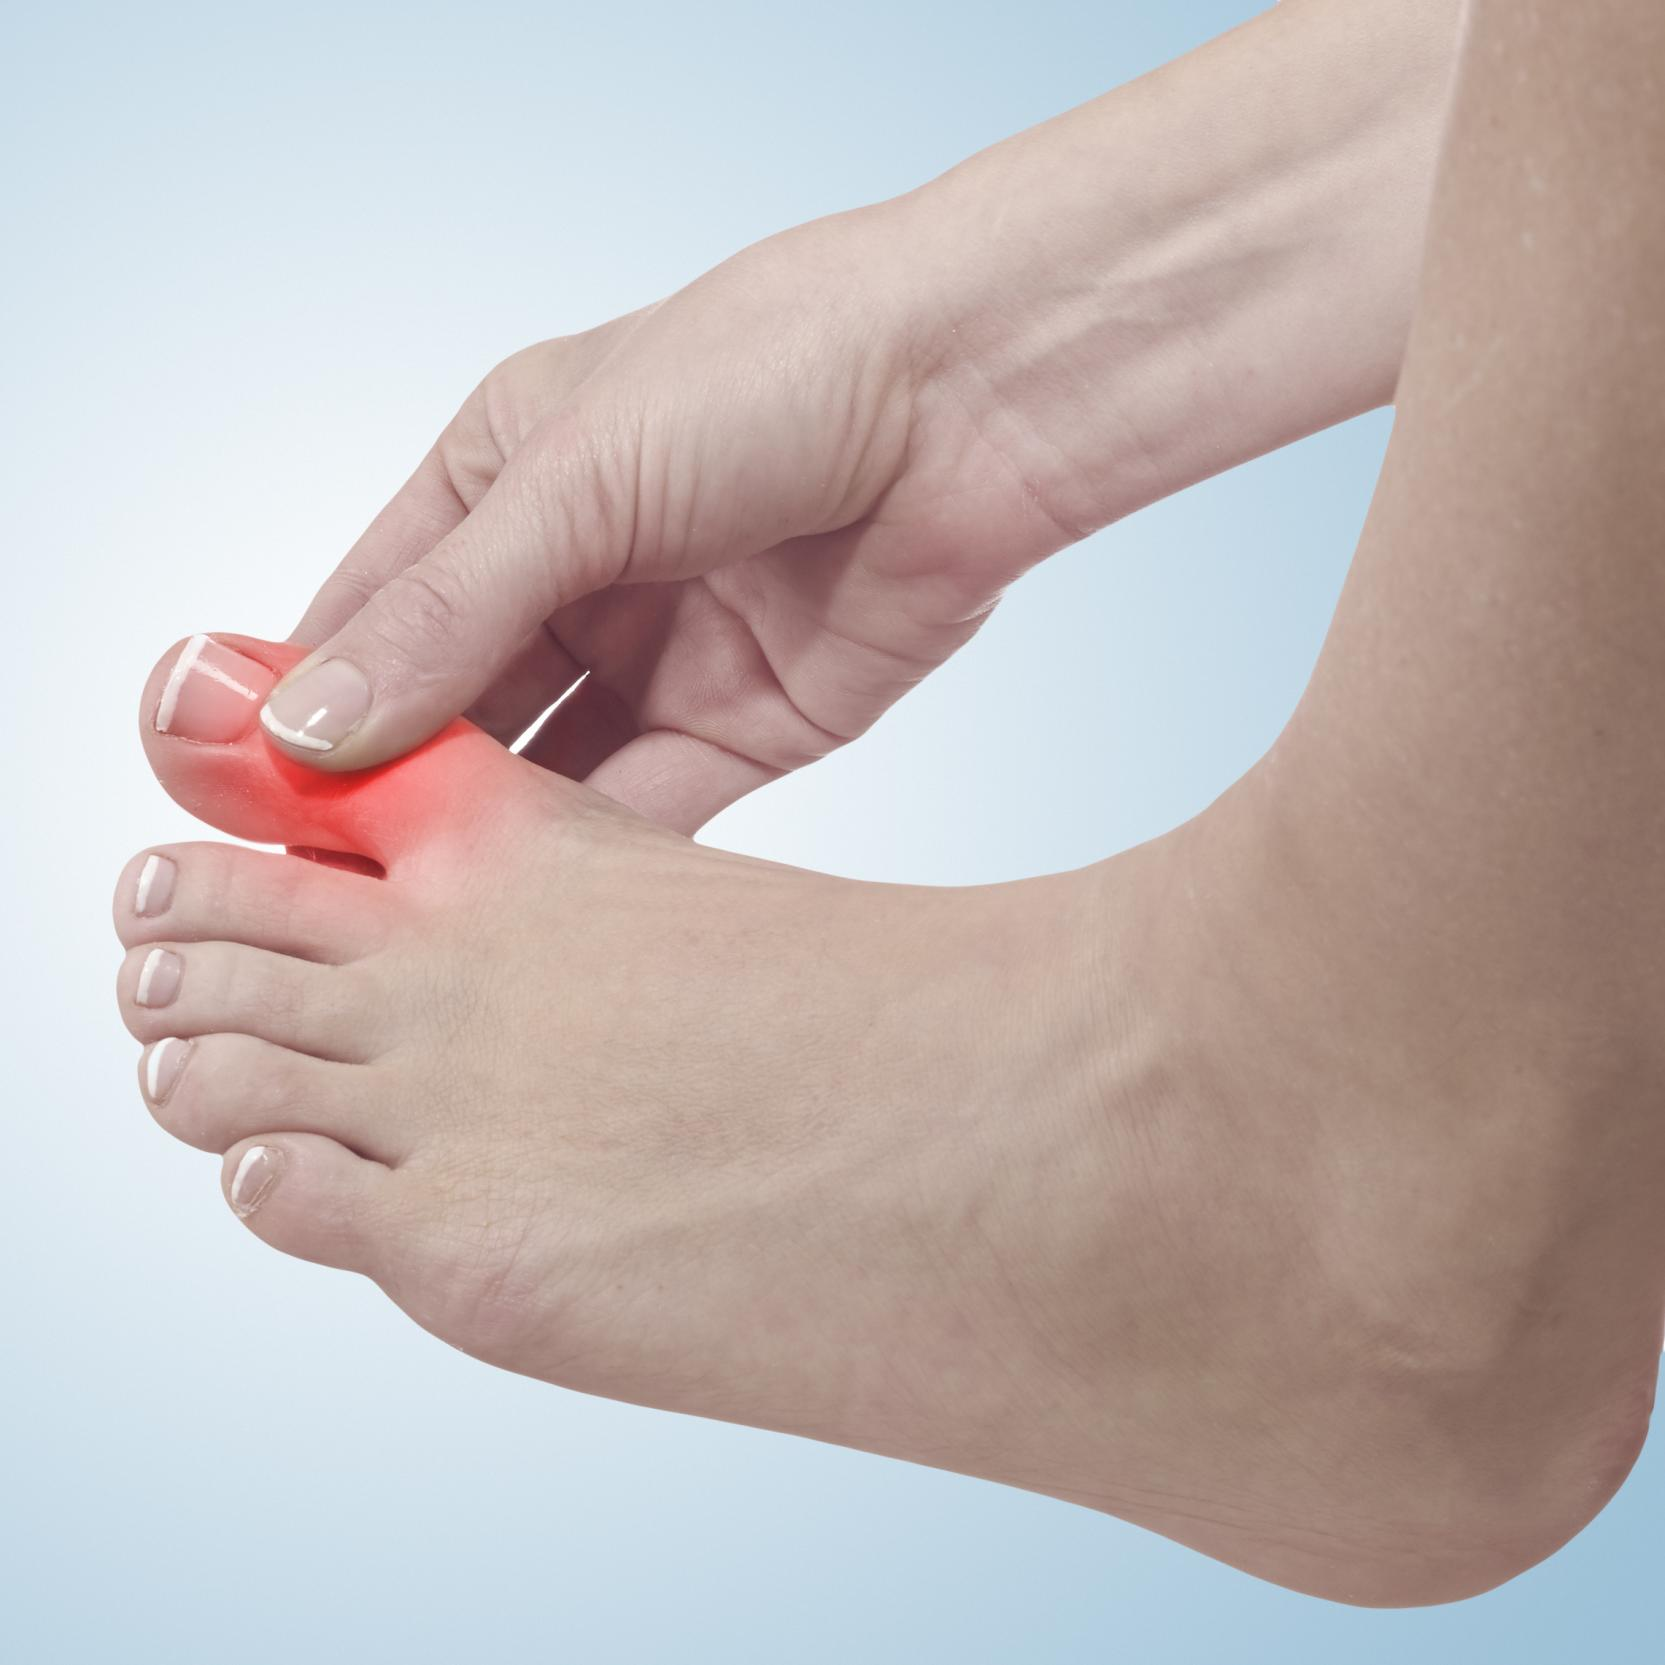 banner of Gout Is One of the Most Painful Forms of Arthritis